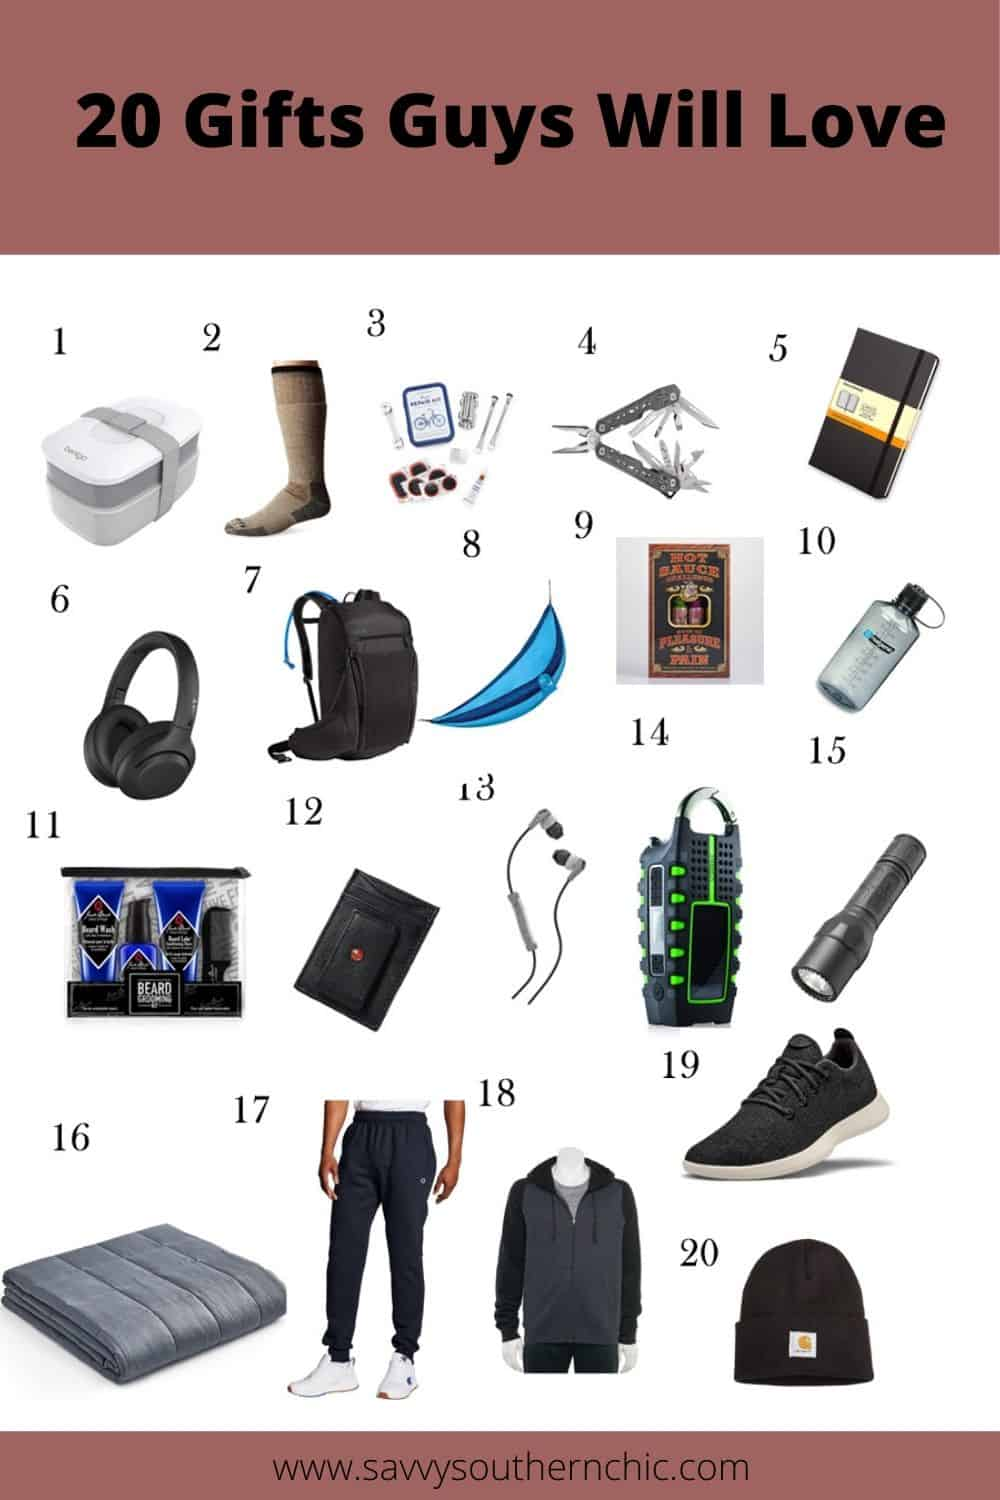 20 gifts guys will love, gift guide for him